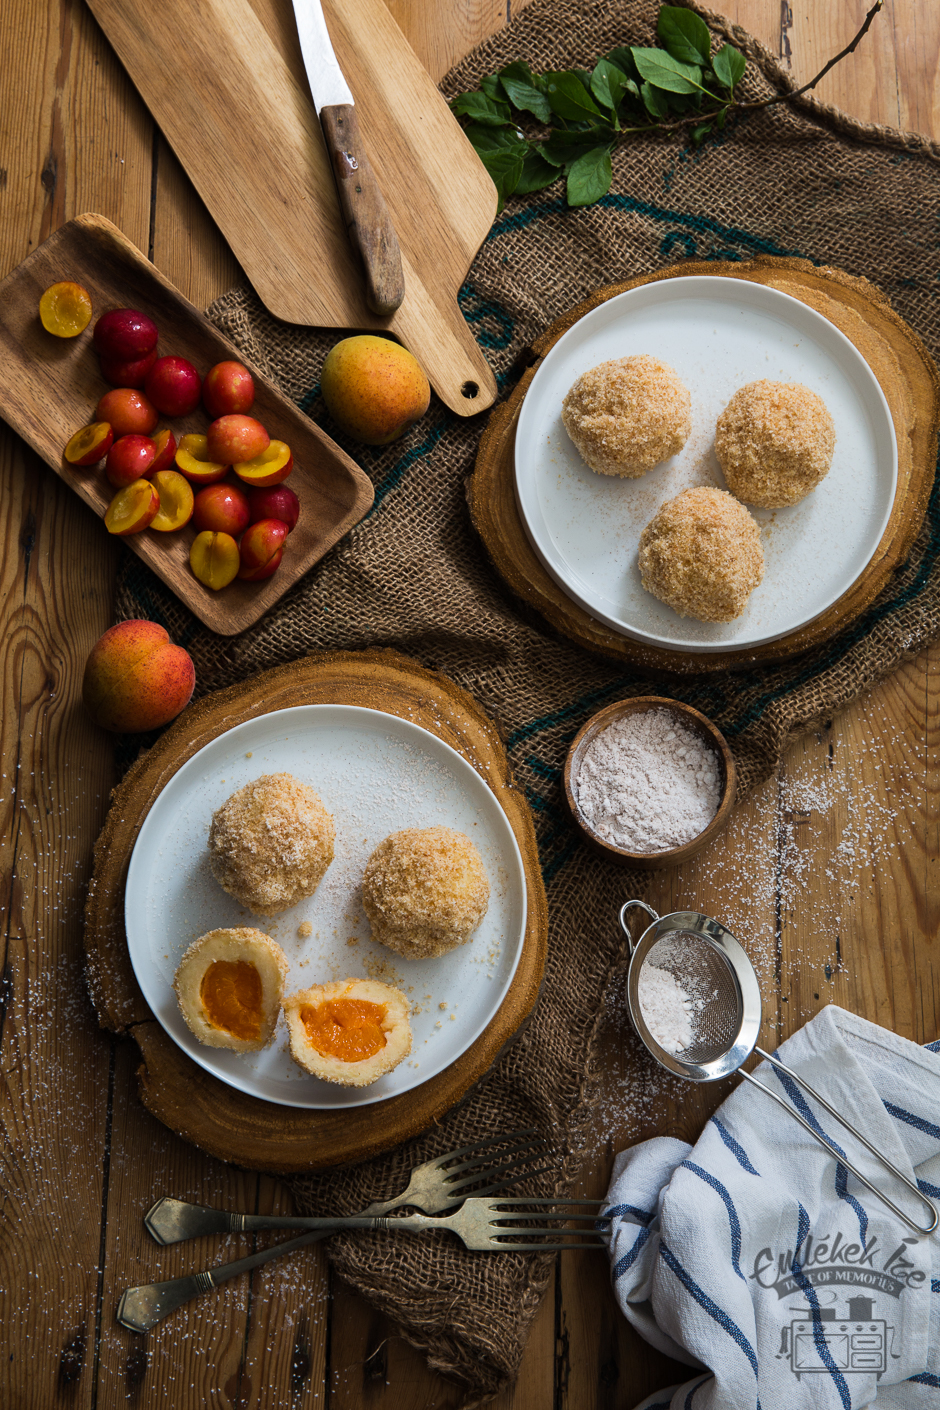 cherry plum and apricot dumplings made with love in the Taste of Memories countryside kitchen